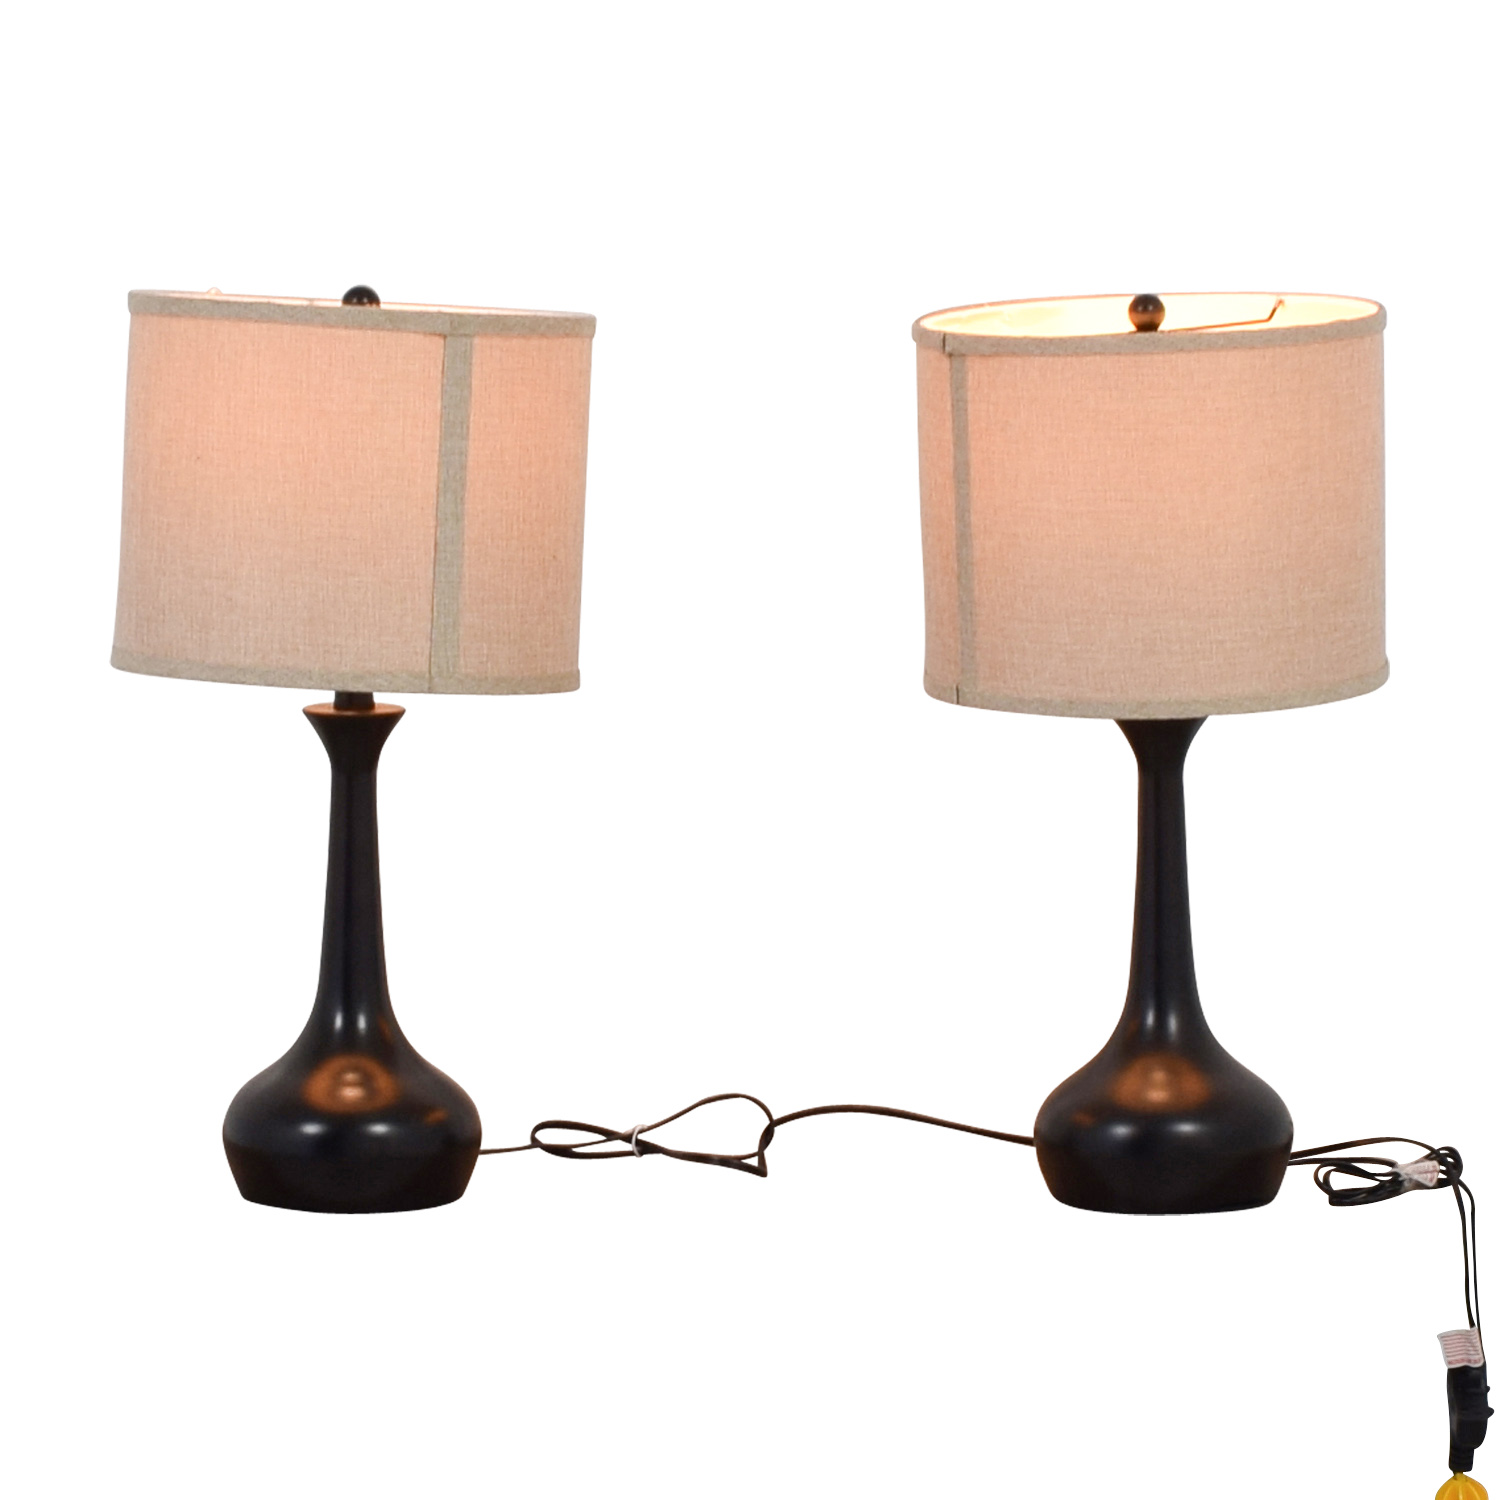 78 Off Pier 1 Imports Black Table Lamps Decor